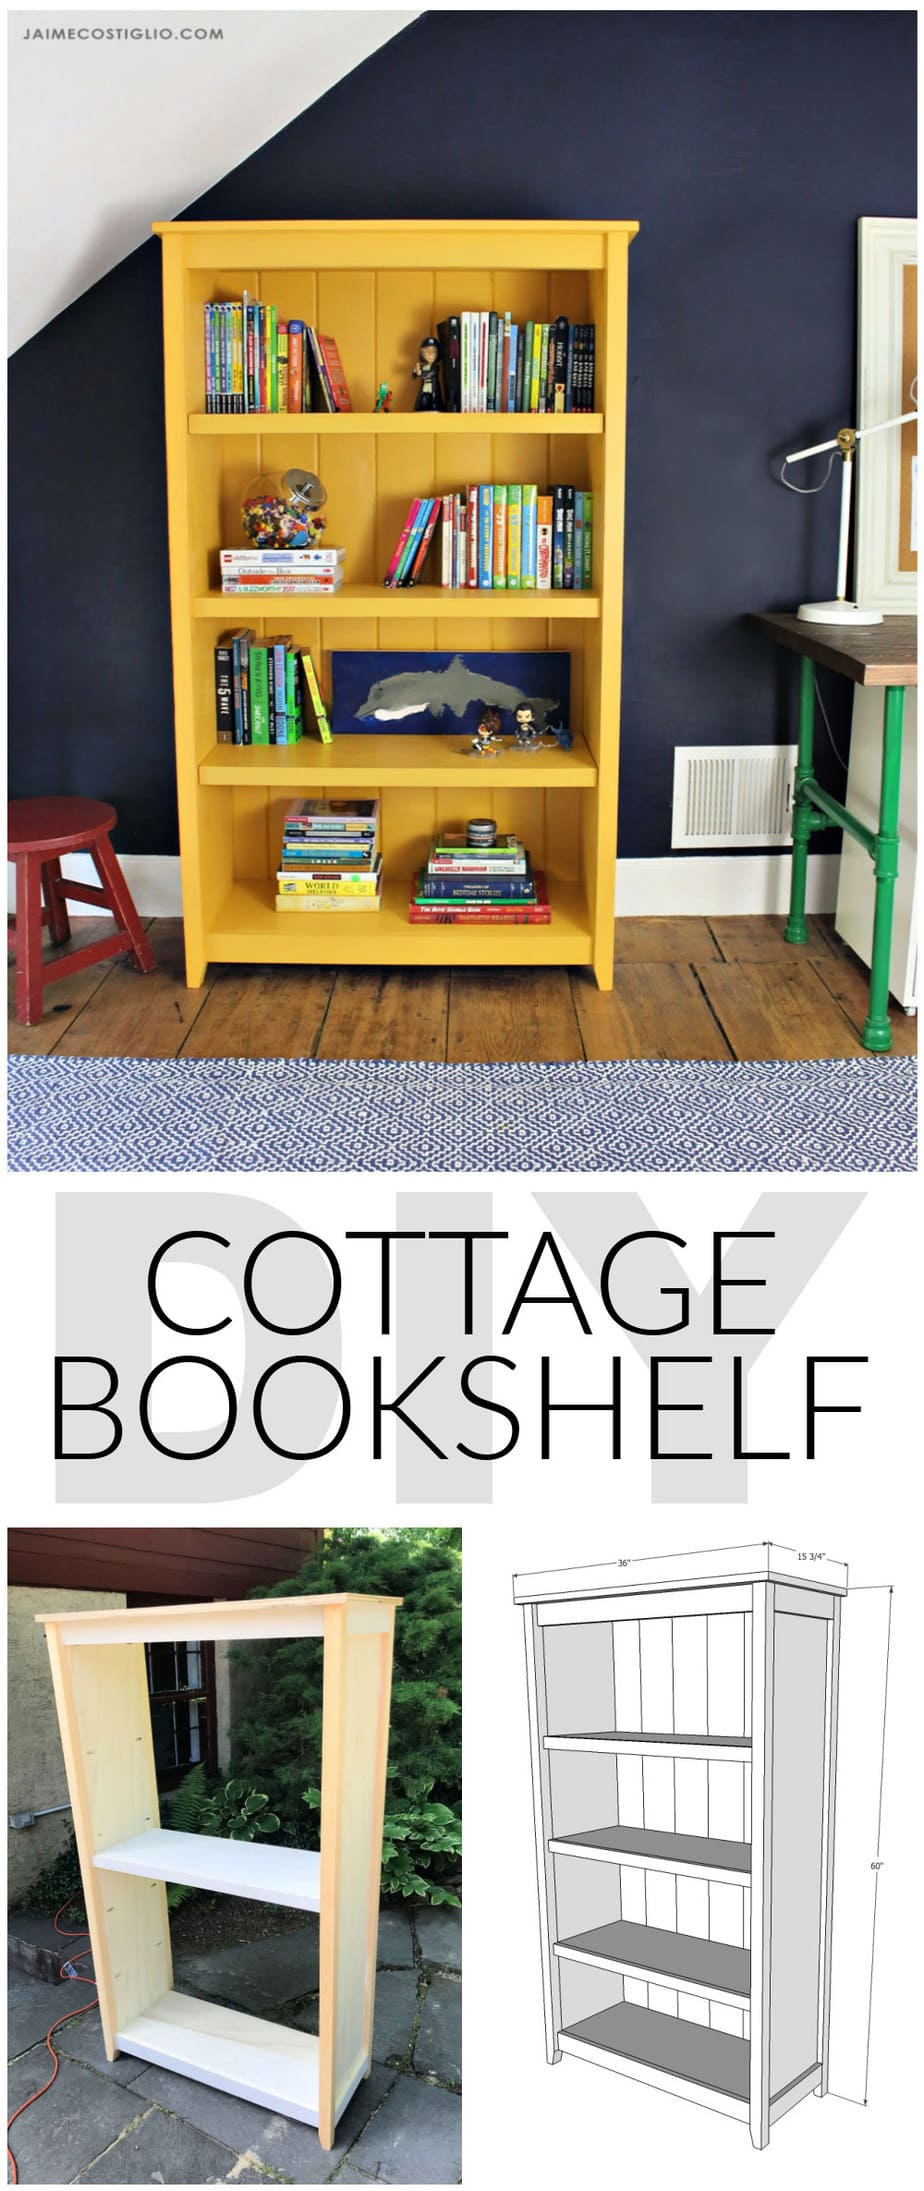 diy cottage bookshelf plans